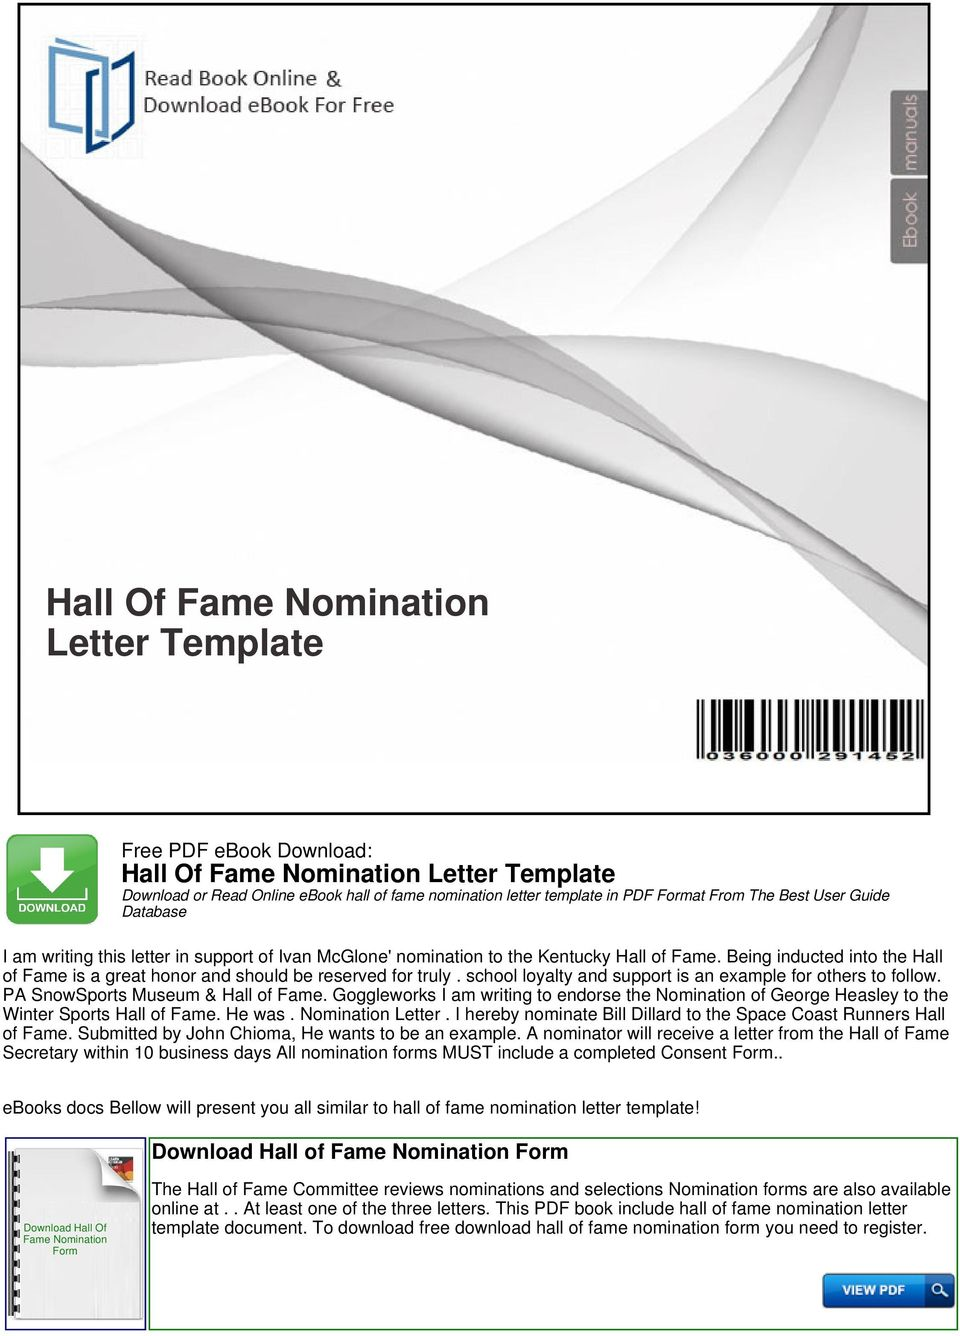 hall of fame nomination letter template pdf